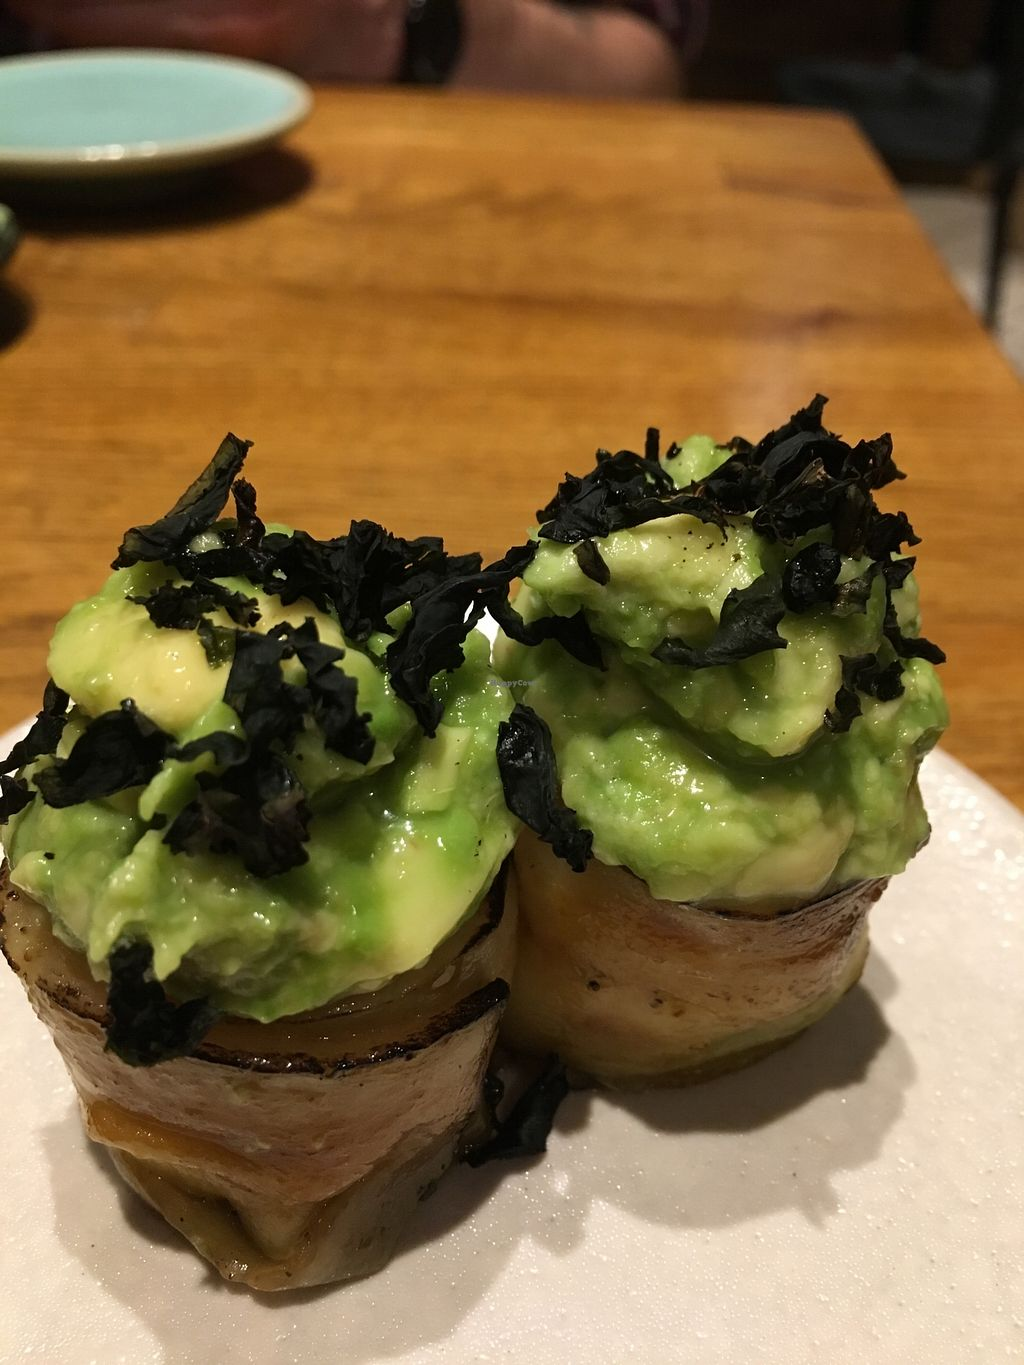 """Photo of Youmiko Vegan Sushi  by <a href=""""/members/profile/Kwacha"""">Kwacha</a> <br/>tasting menu <br/> January 17, 2018  - <a href='/contact/abuse/image/68693/347638'>Report</a>"""